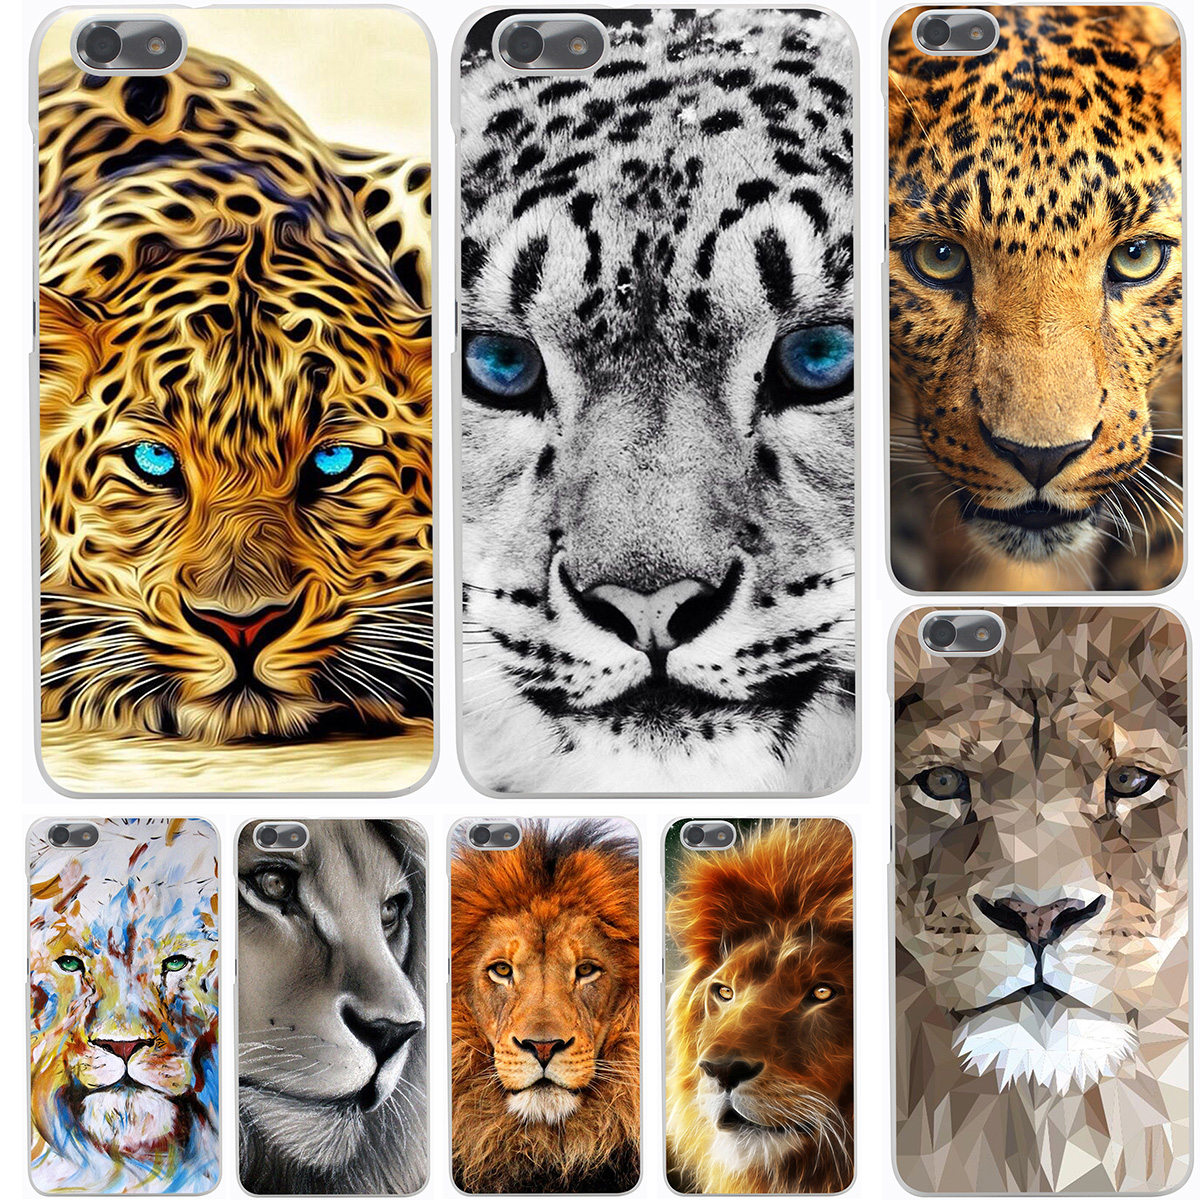 Lion tiger head Hard Cover Case for Huawei P6 7 P8 Lite P9 Lite Plus G7 & Honor 4C 4X 6 7(China (Mainland))